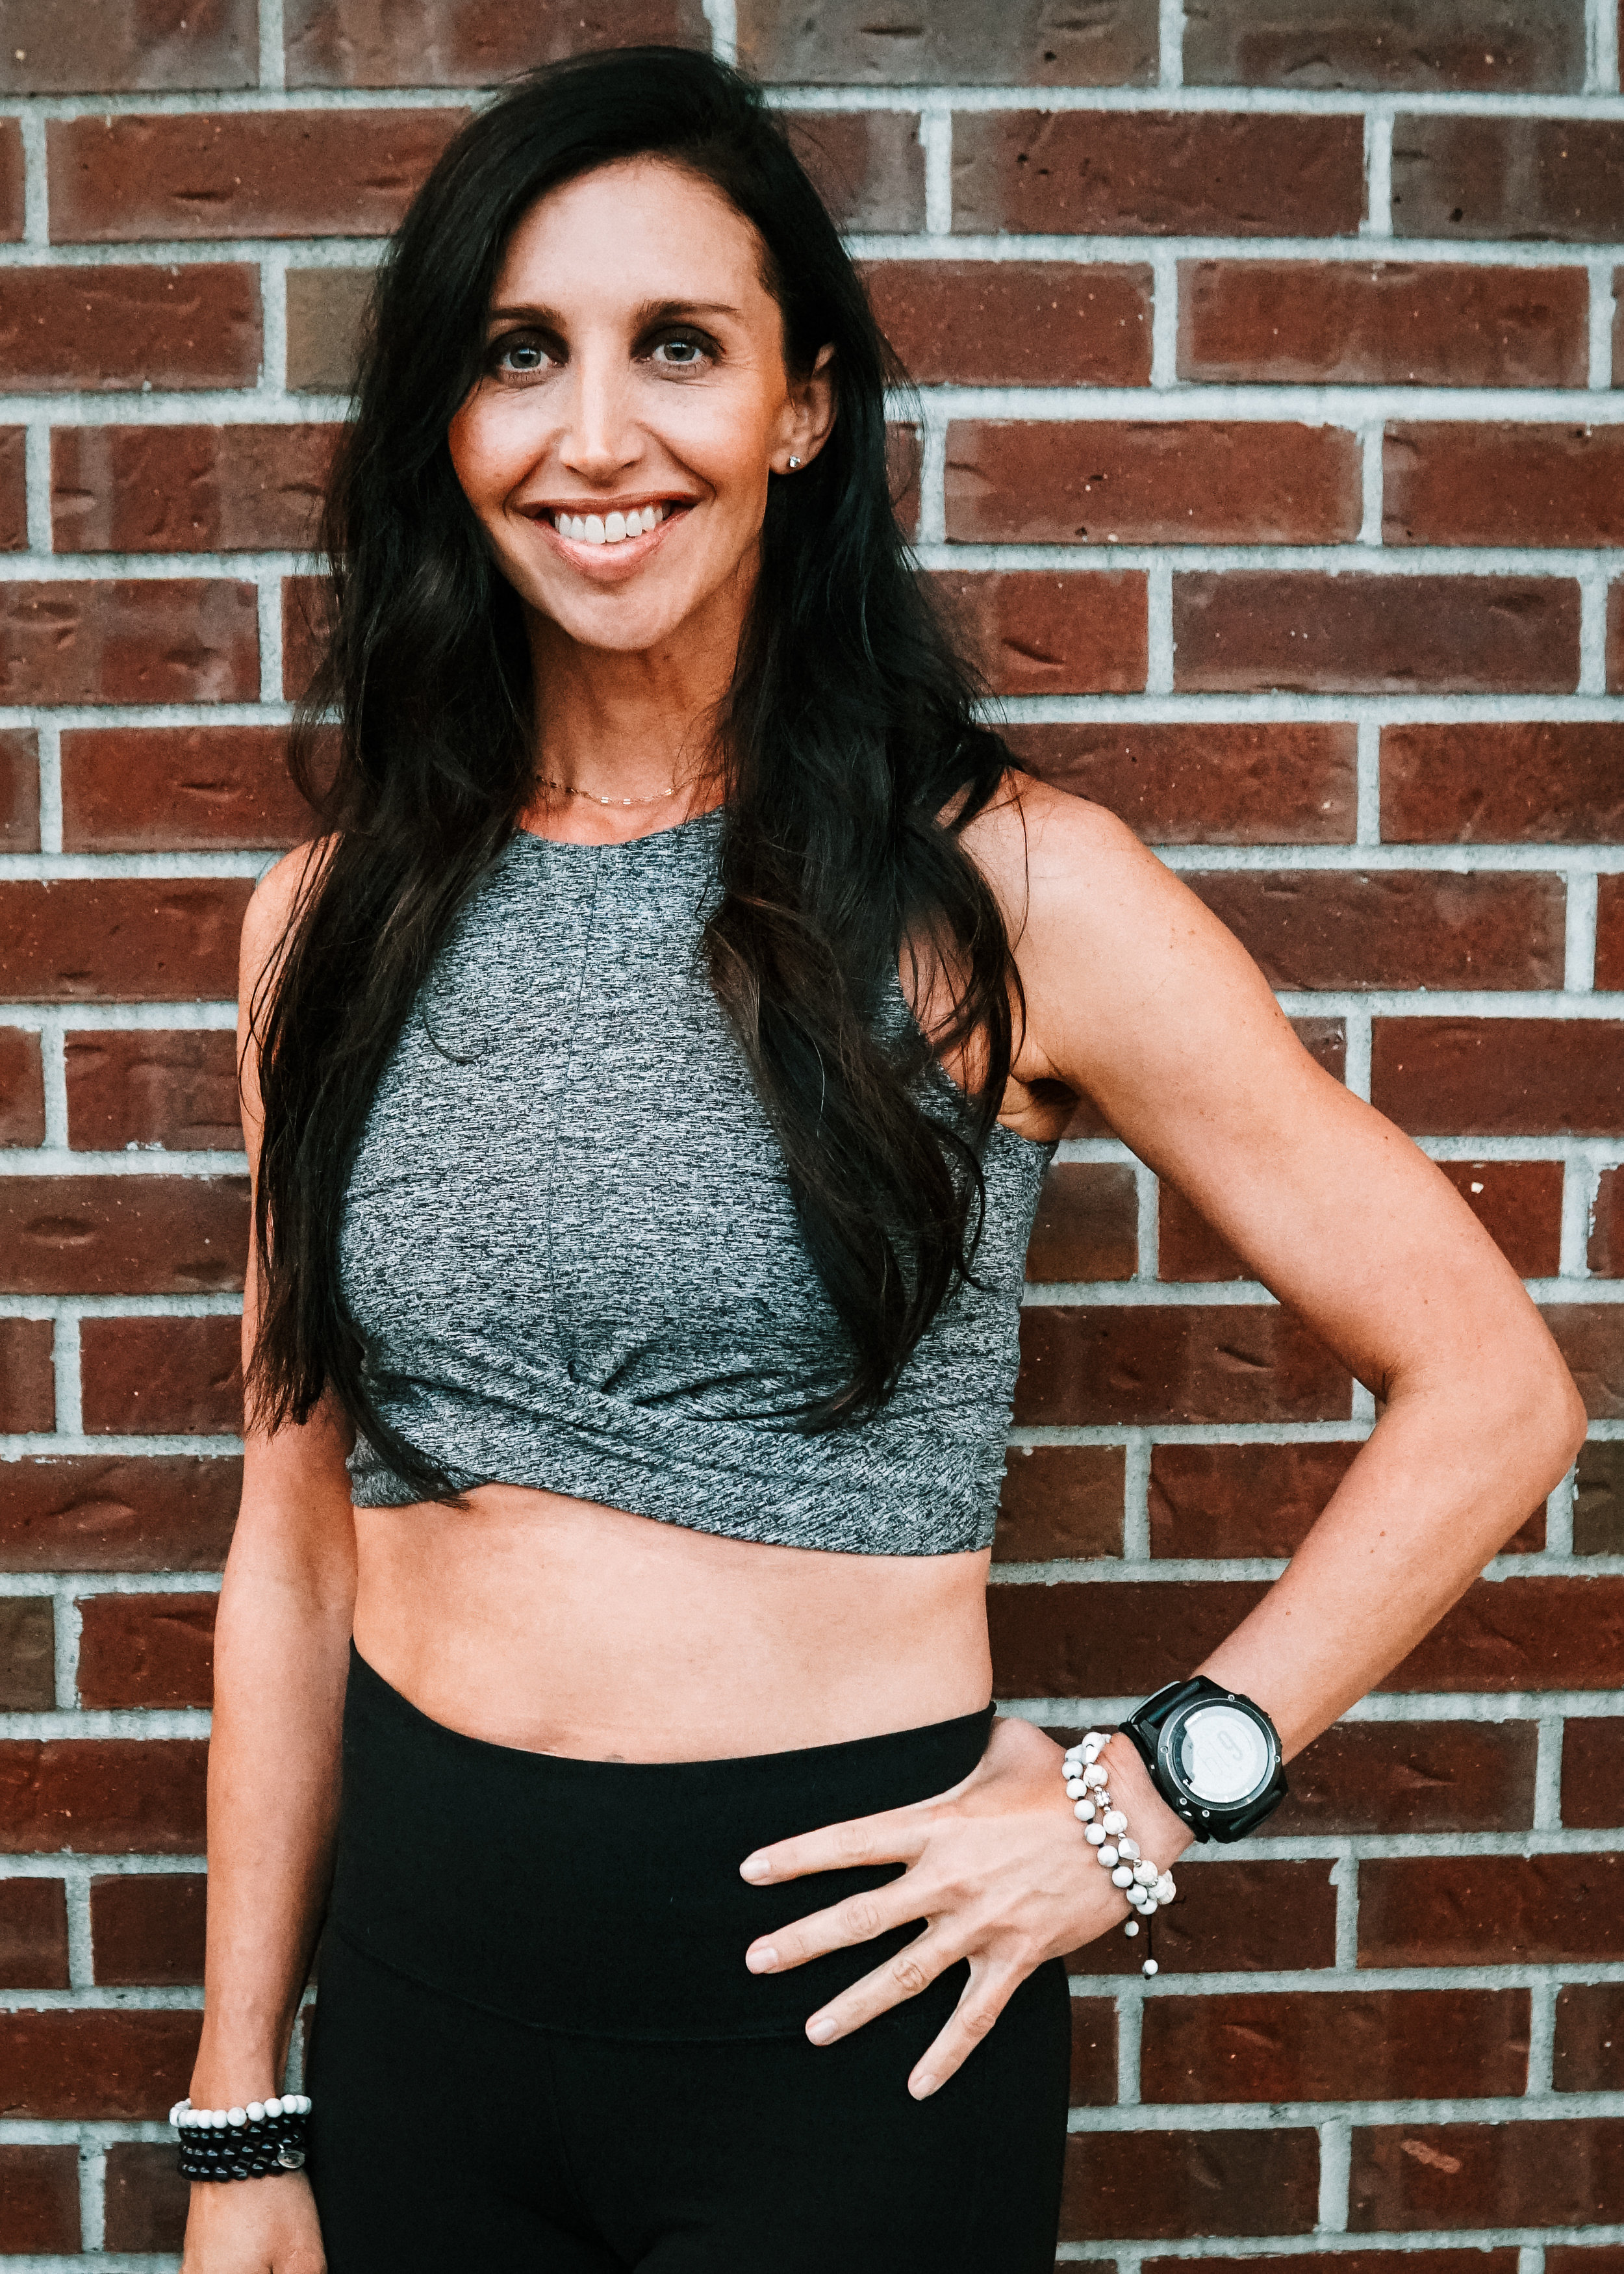 Karey - HIIT, Barre, Power Plus, Run SuperKarey has been a fitness lover all her life. She has Coached the Run Super program for years and is excited to extend her knowledge into the studio. She loves to teach good form and is known for being extremely encouraging. Karey is a strong runner and athlete ready for you to tackle her classes! She's a mom to 3 and wife to an awesomely supportive husband. Her positive outlook on life carries over into her very encouraging style of teaching. She will help you feel confident and capable!